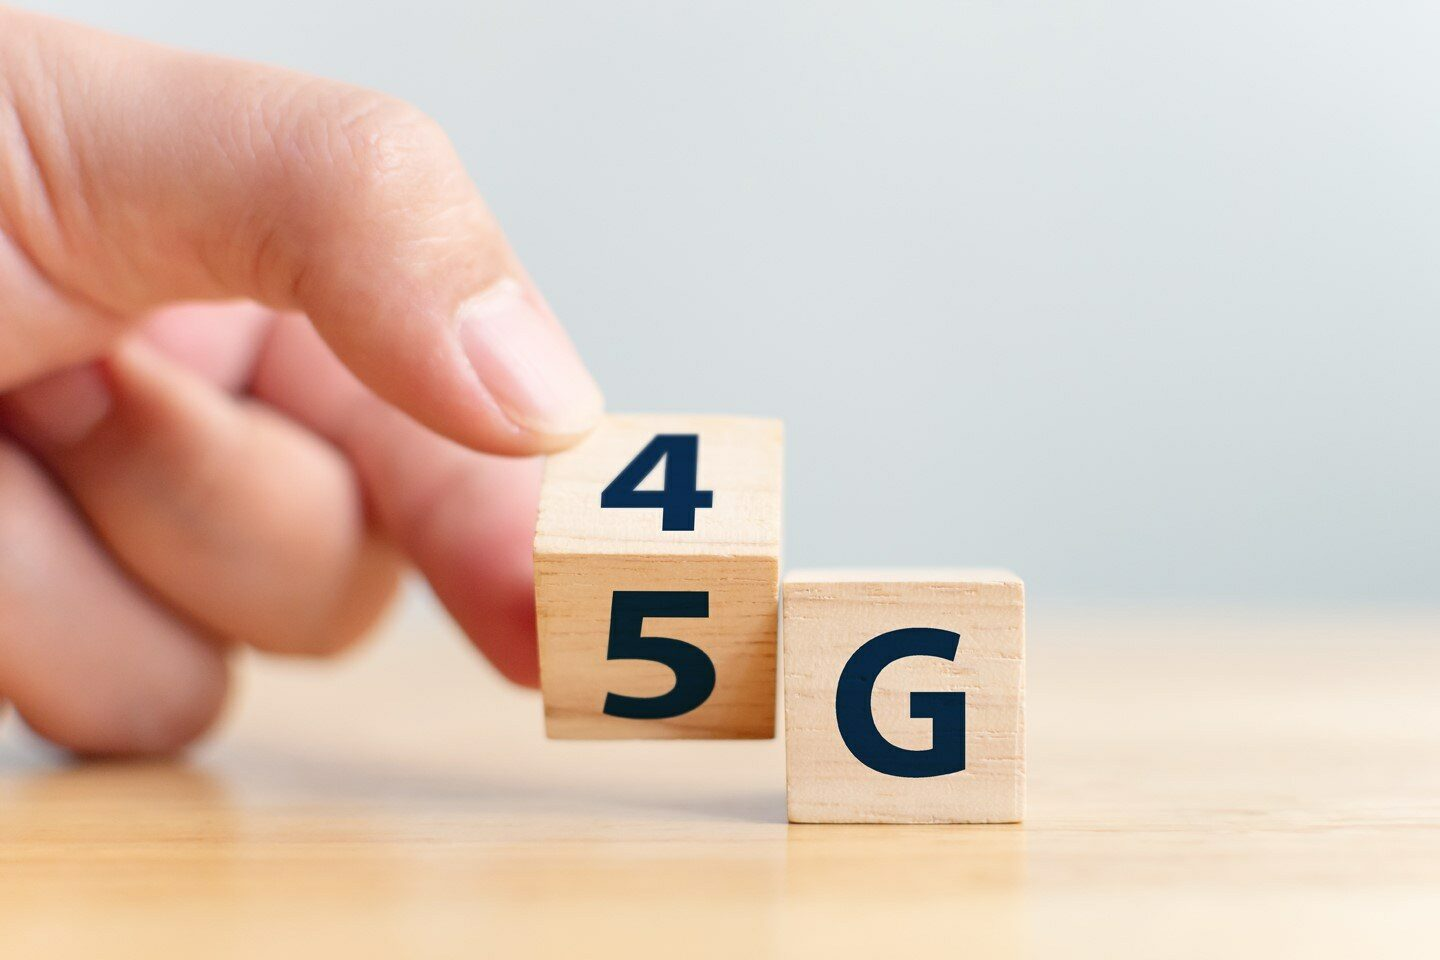 Shift from 4G to 5G